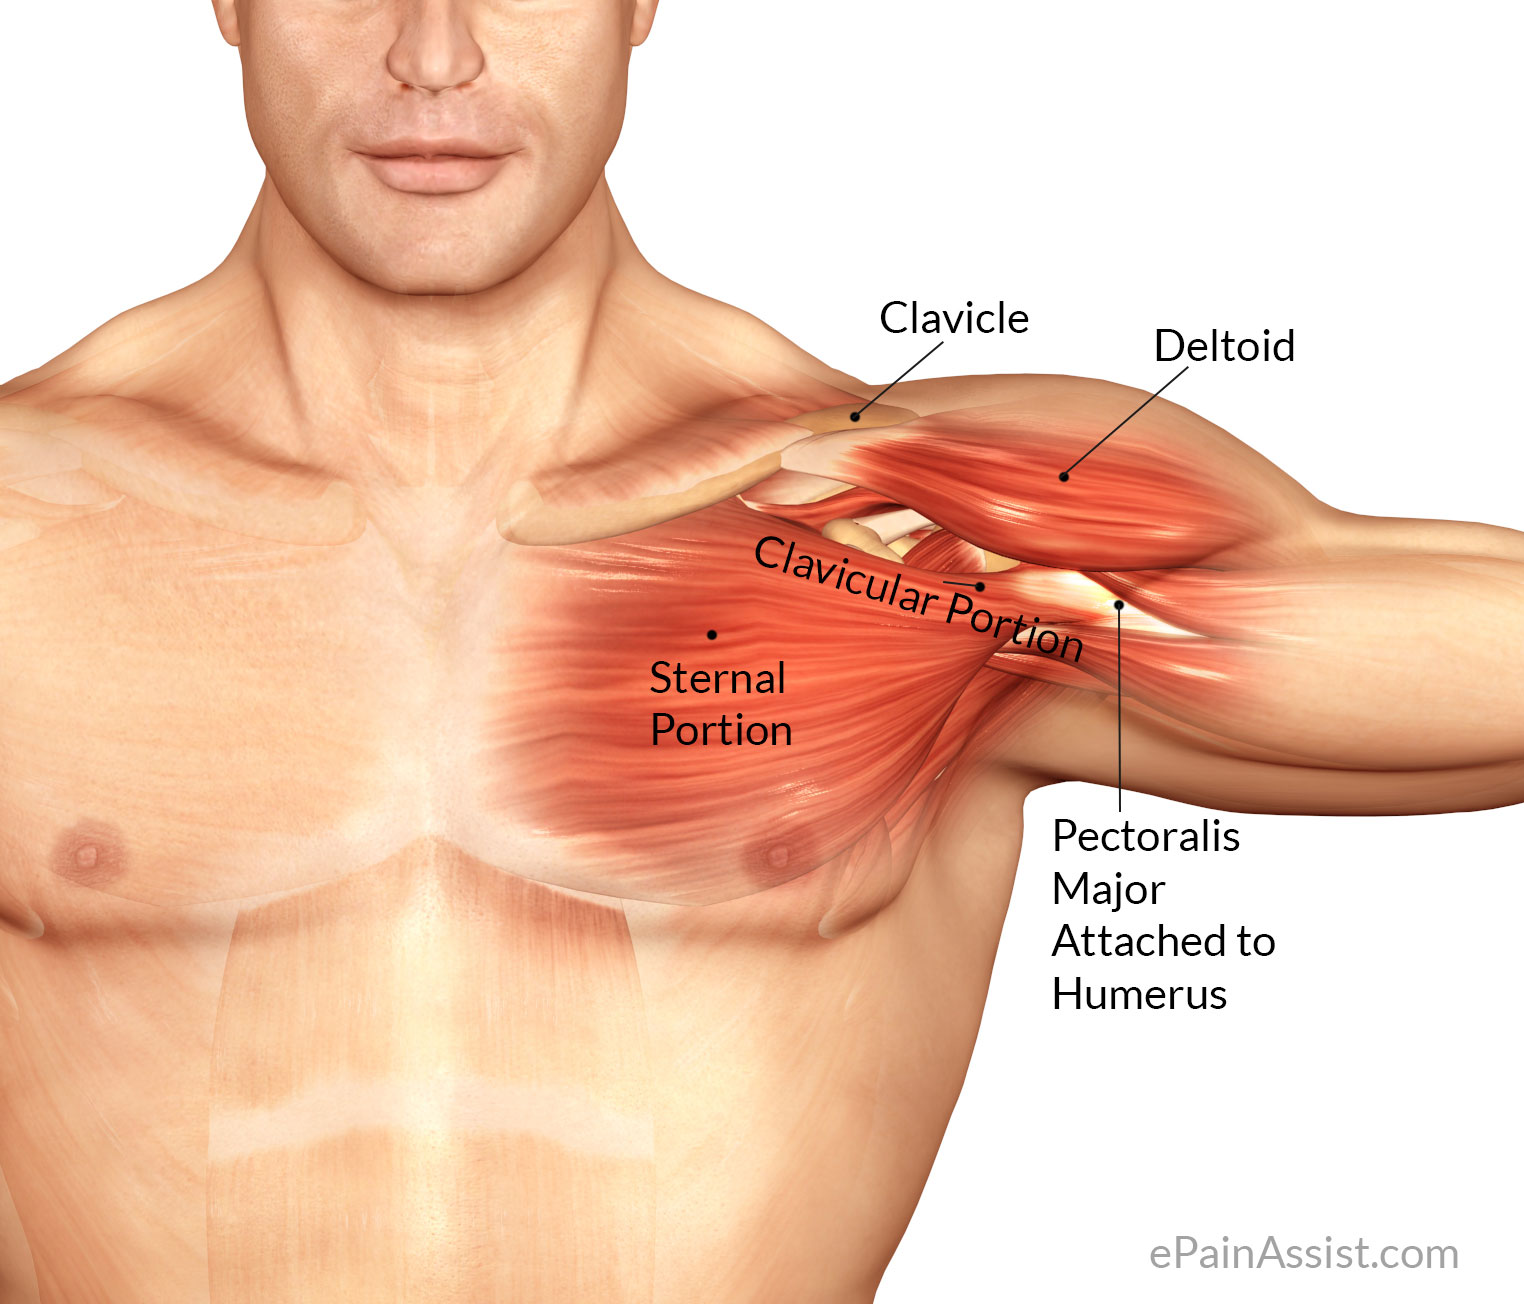 Pectoralis Major Inflammation